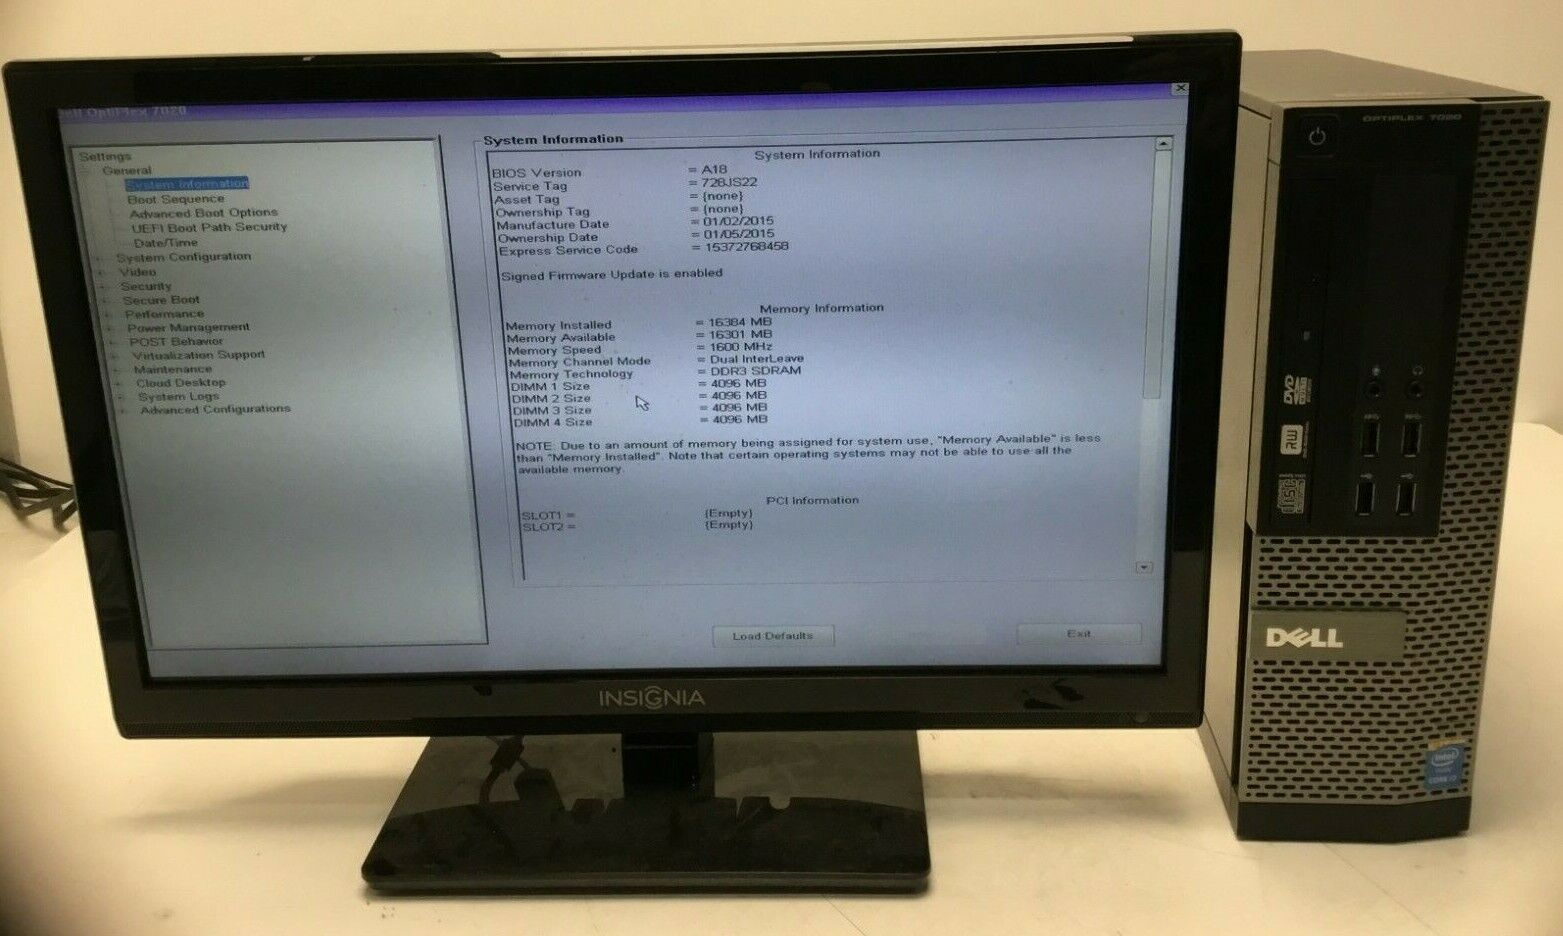 Dell OptiPlex 7020 SFF i7-4790 3.60GHz 16GB Ram 240GB HDD Win 10 Pro Tested. Buy it now for 194.99